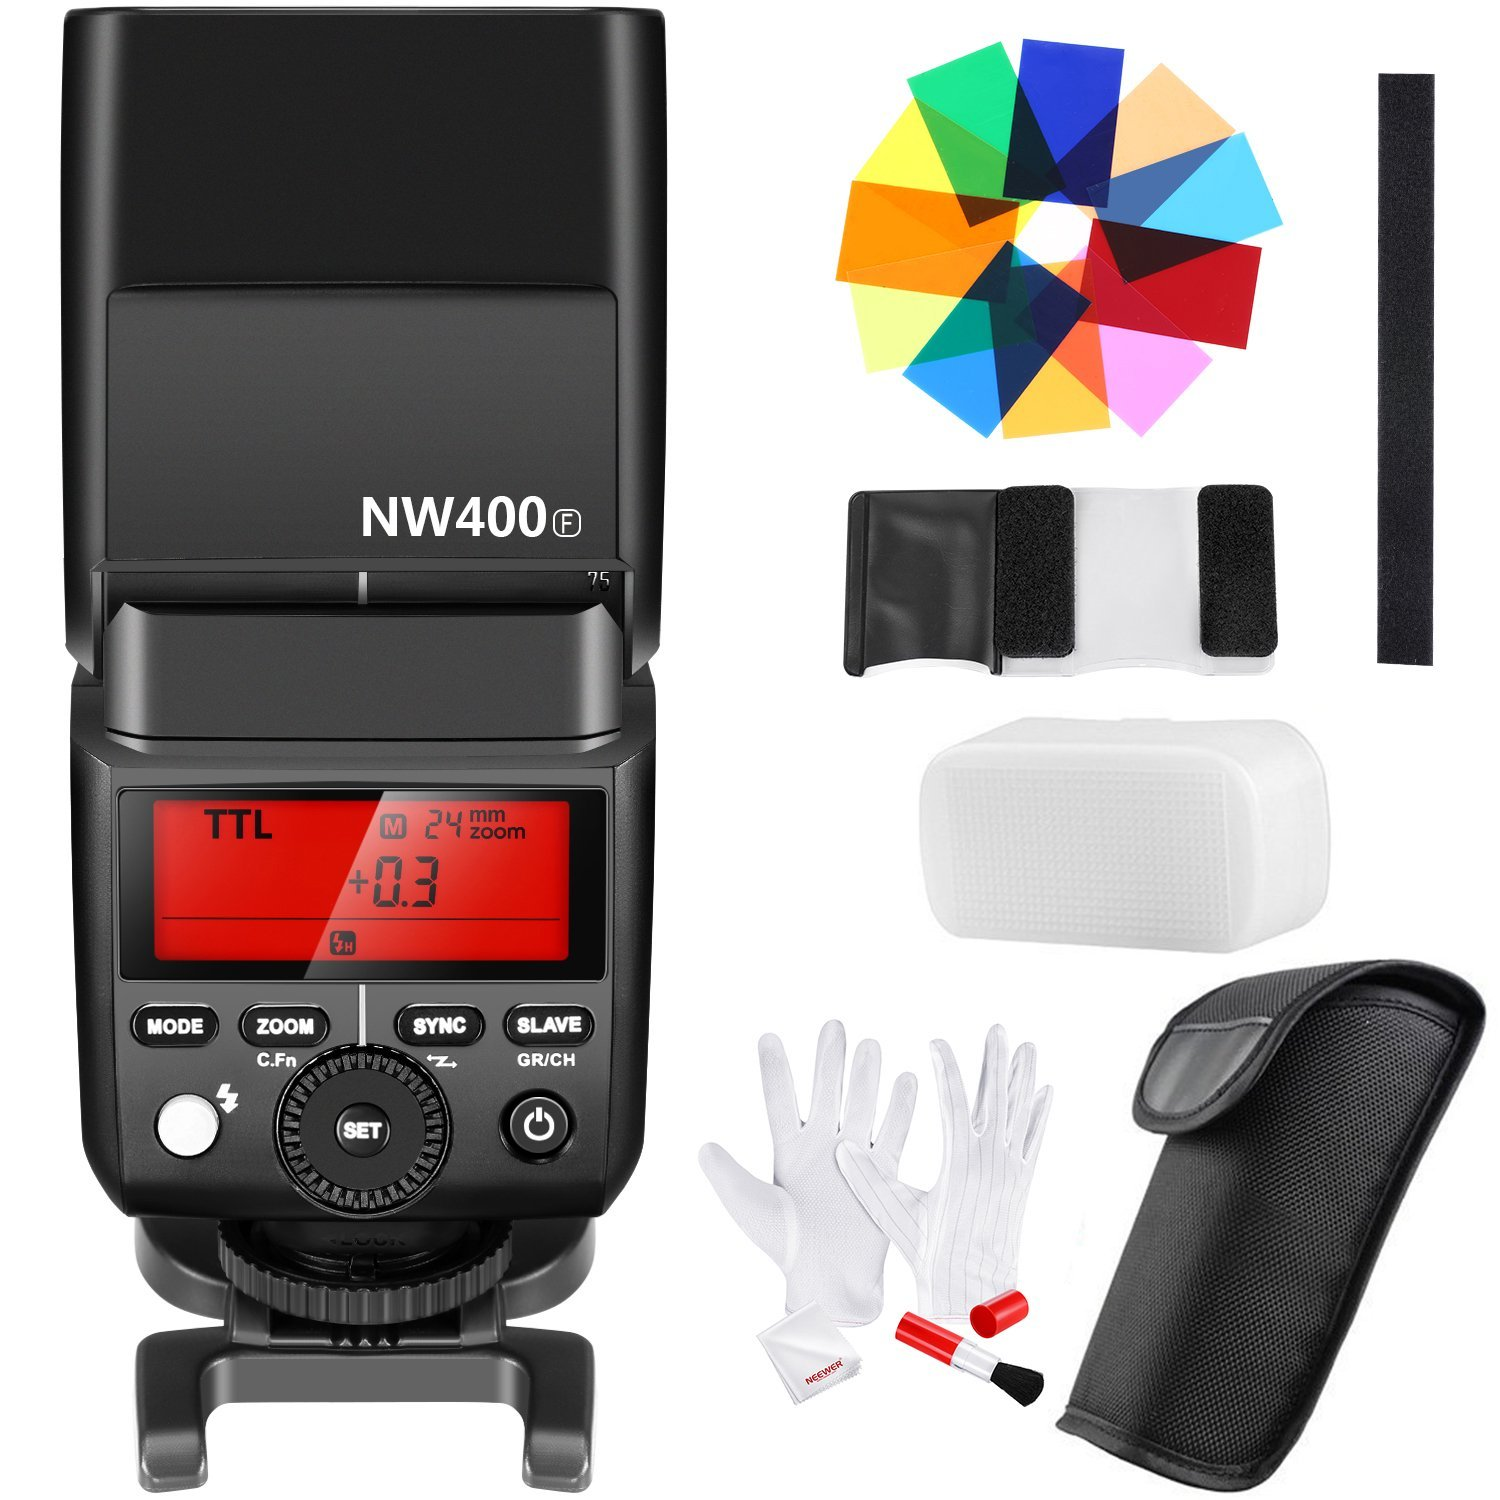 Neewer 2.4G Wireless TTL HSS Master/Slave Speedlite Flash with 12-Piece Color Filters and Cleaning Kit for Fujifilm Mirrorless Digital Cameras Like X-Pro2,X-T20,X-T10,X-A3(NW400F) by Neewer